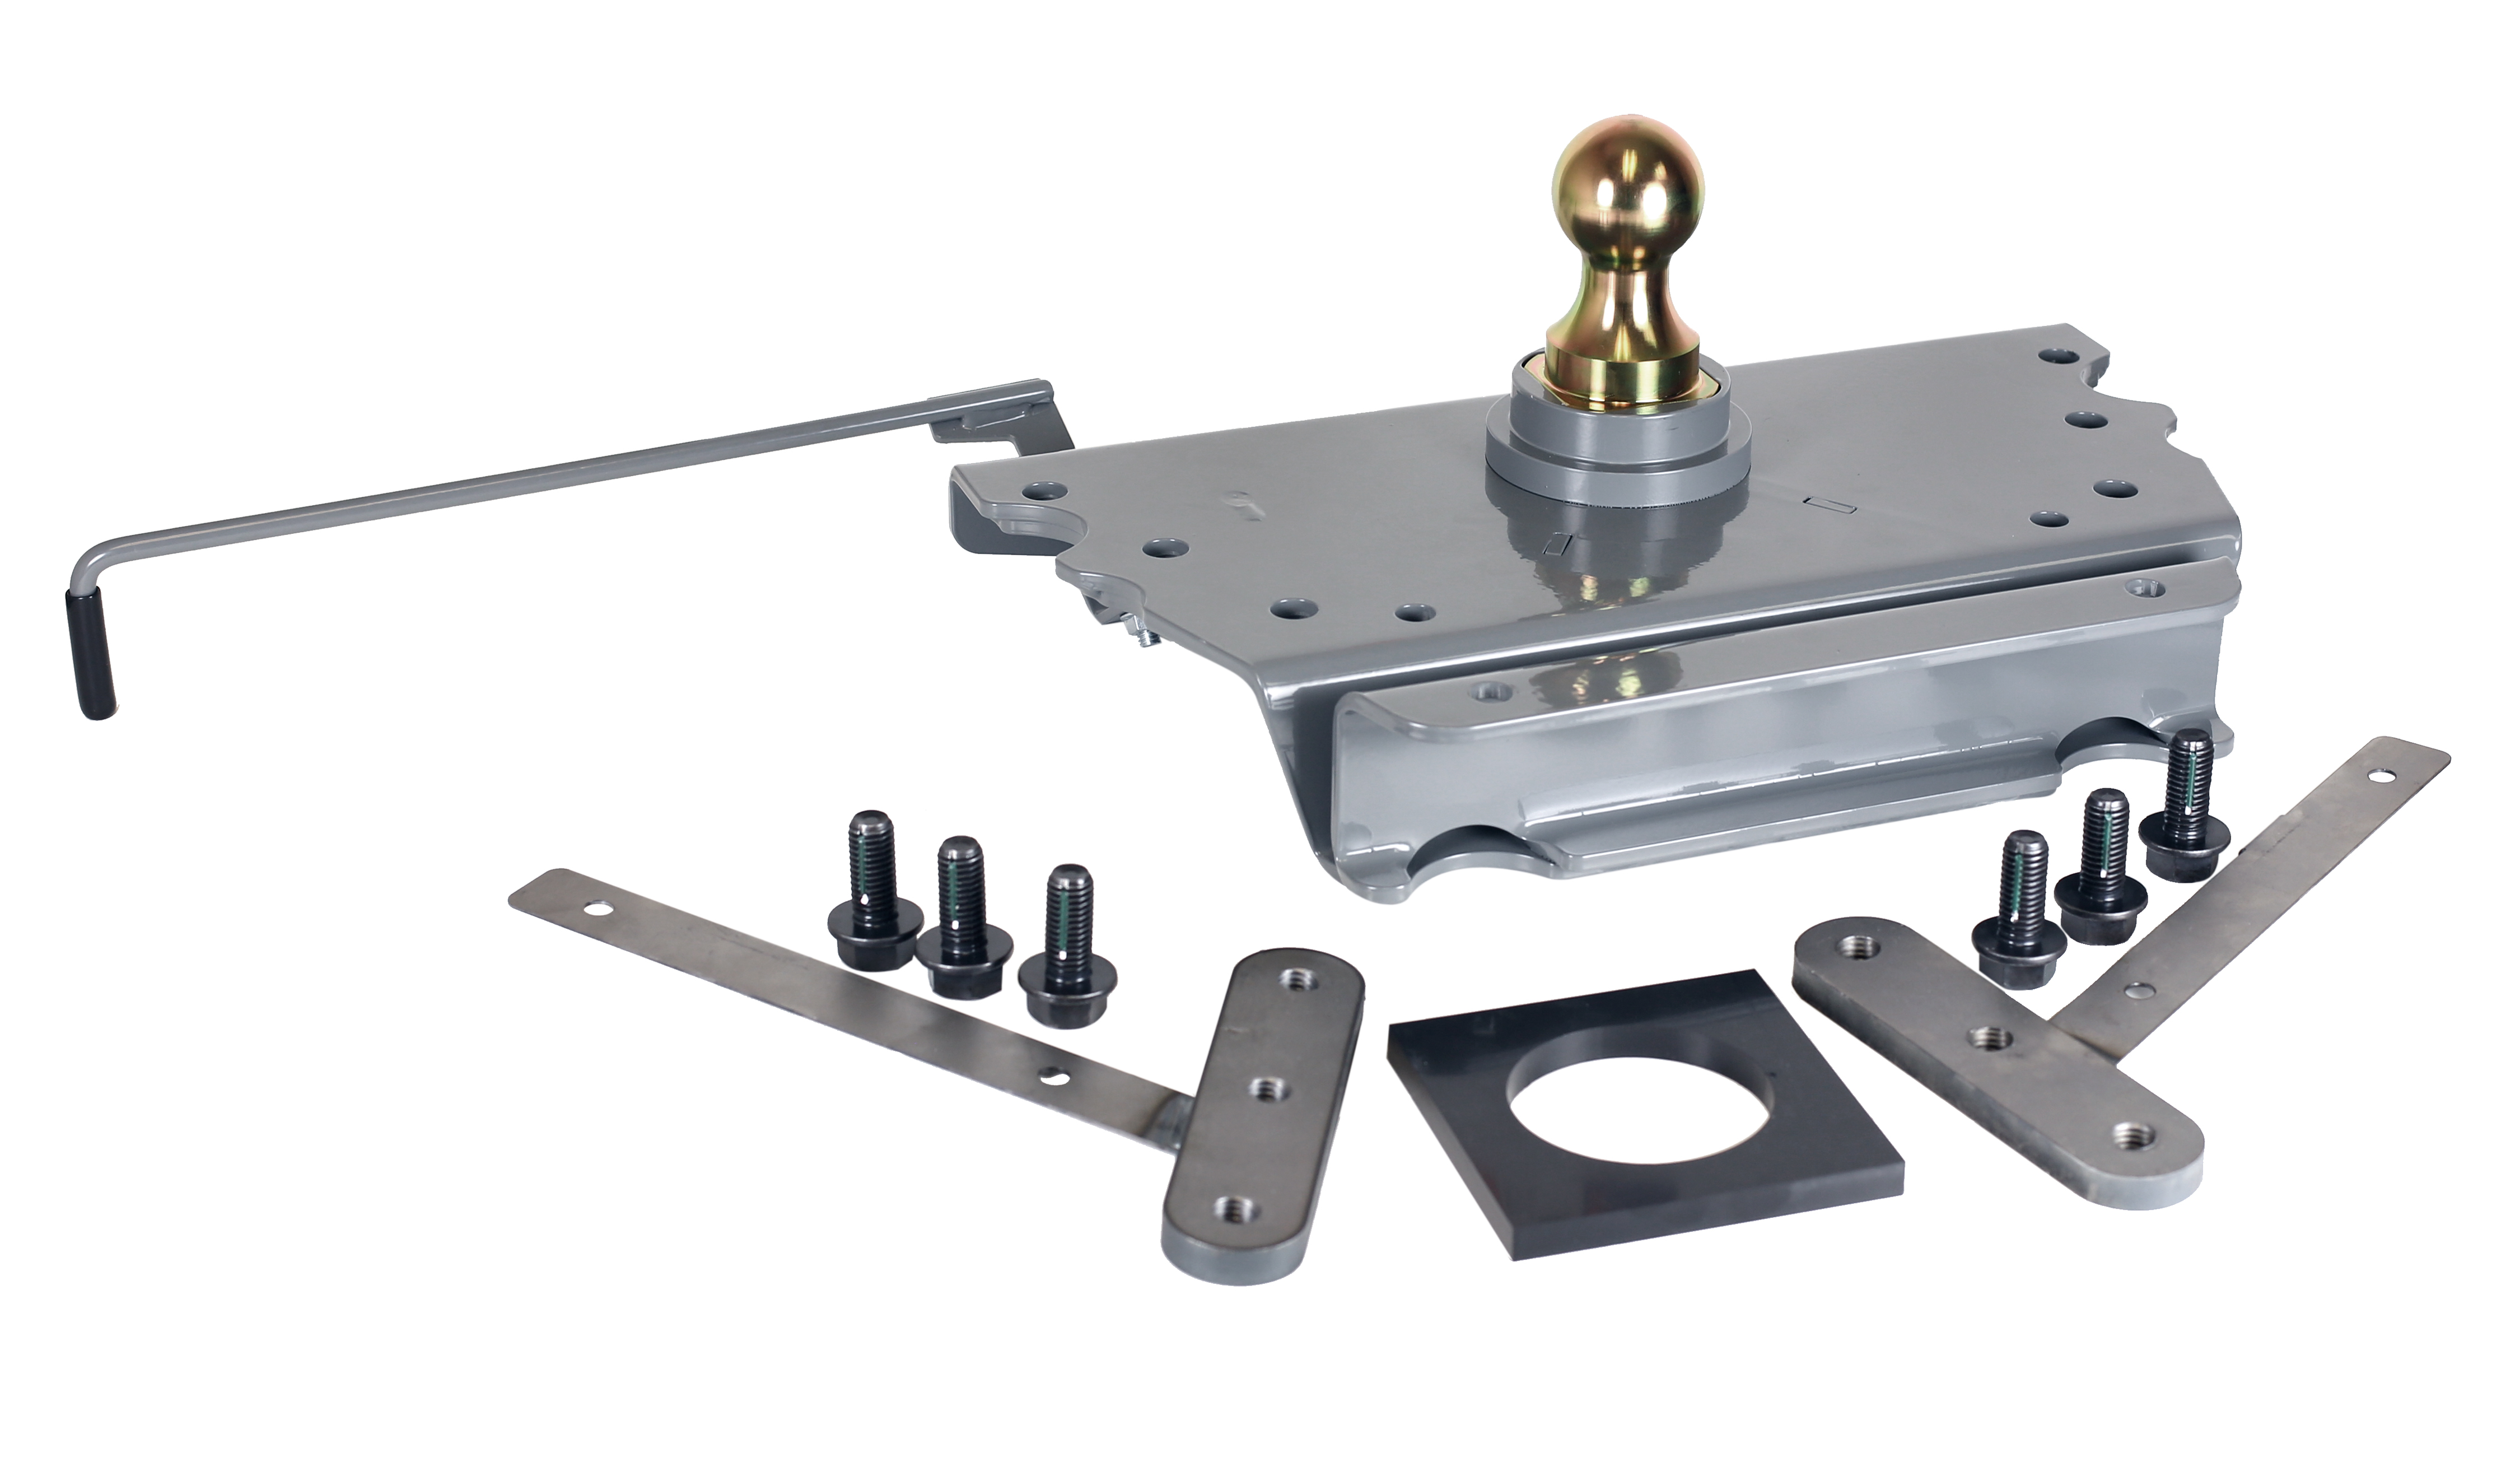 B&W Trailer Hitches Delivers First Aftermarket Gooseneck Hitch for 2013 RAM 3500 Trucks